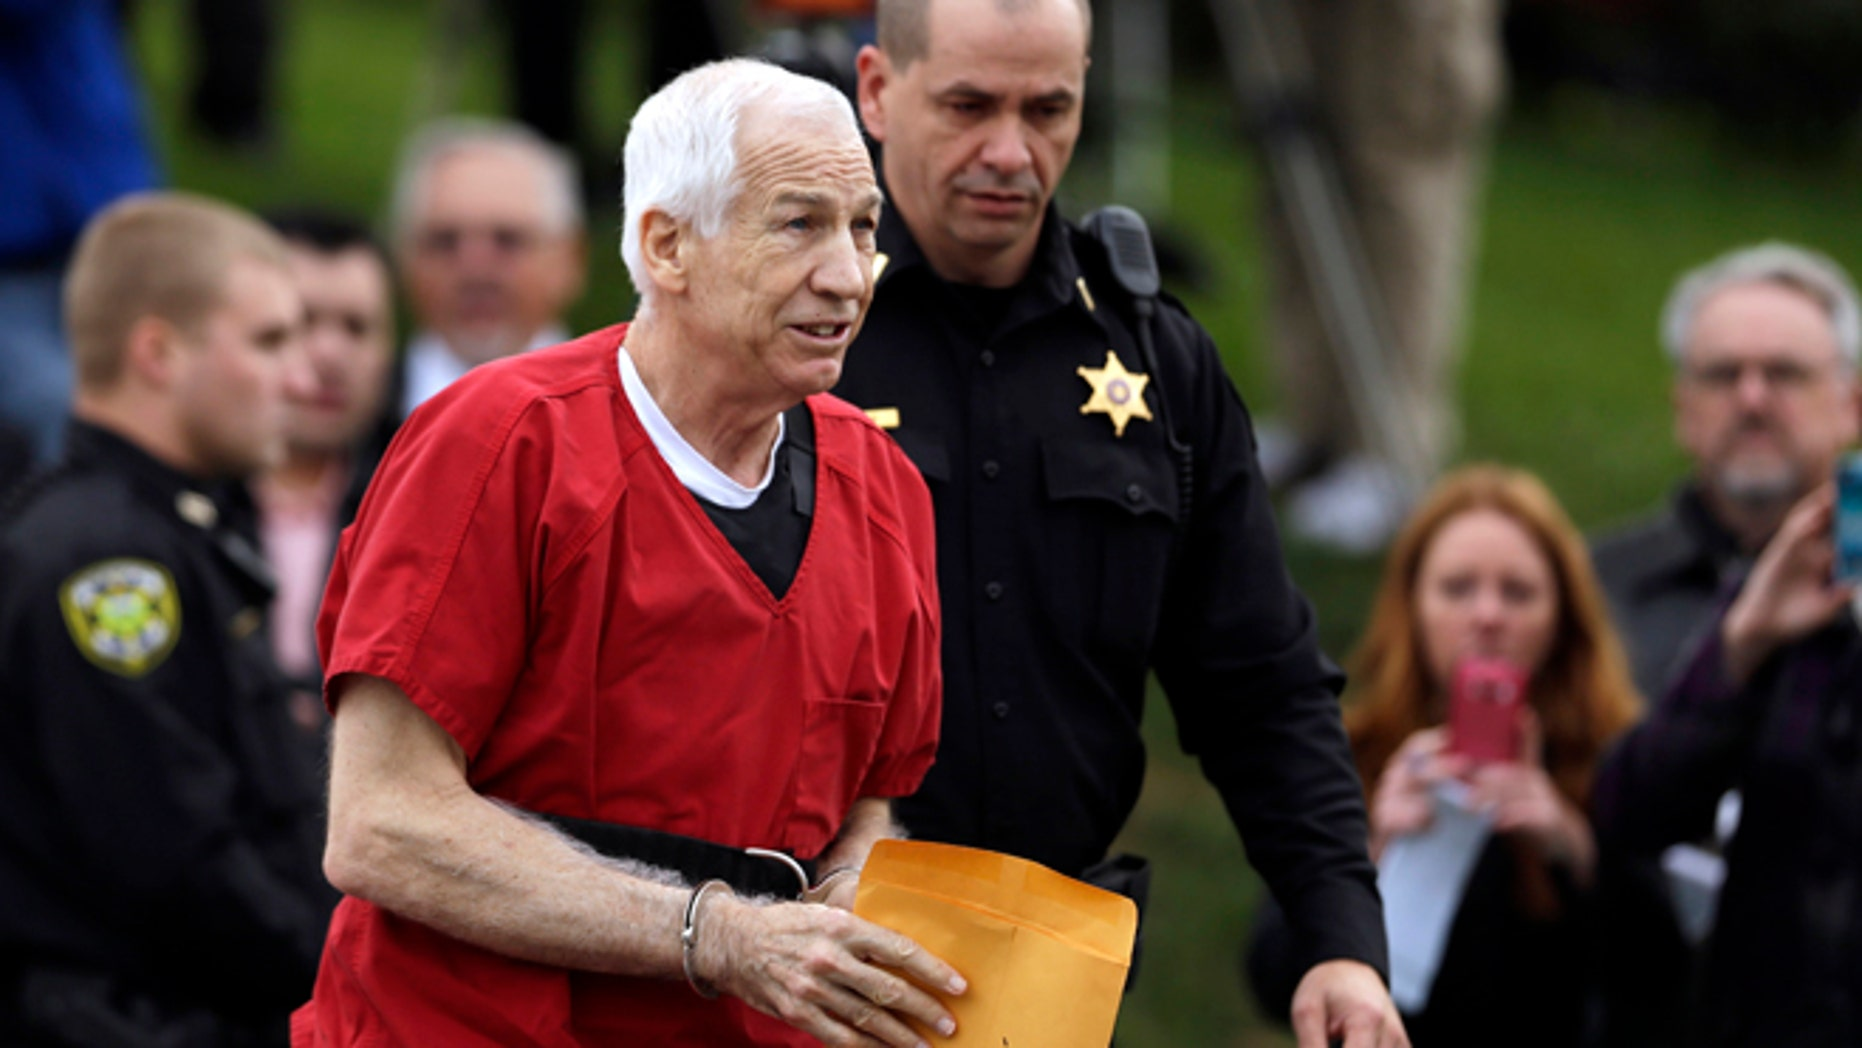 Oct. 9: Former Penn State University assistant football coach Jerry Sandusky arrives at the Centre County Courthouse for a sentencing hearing.